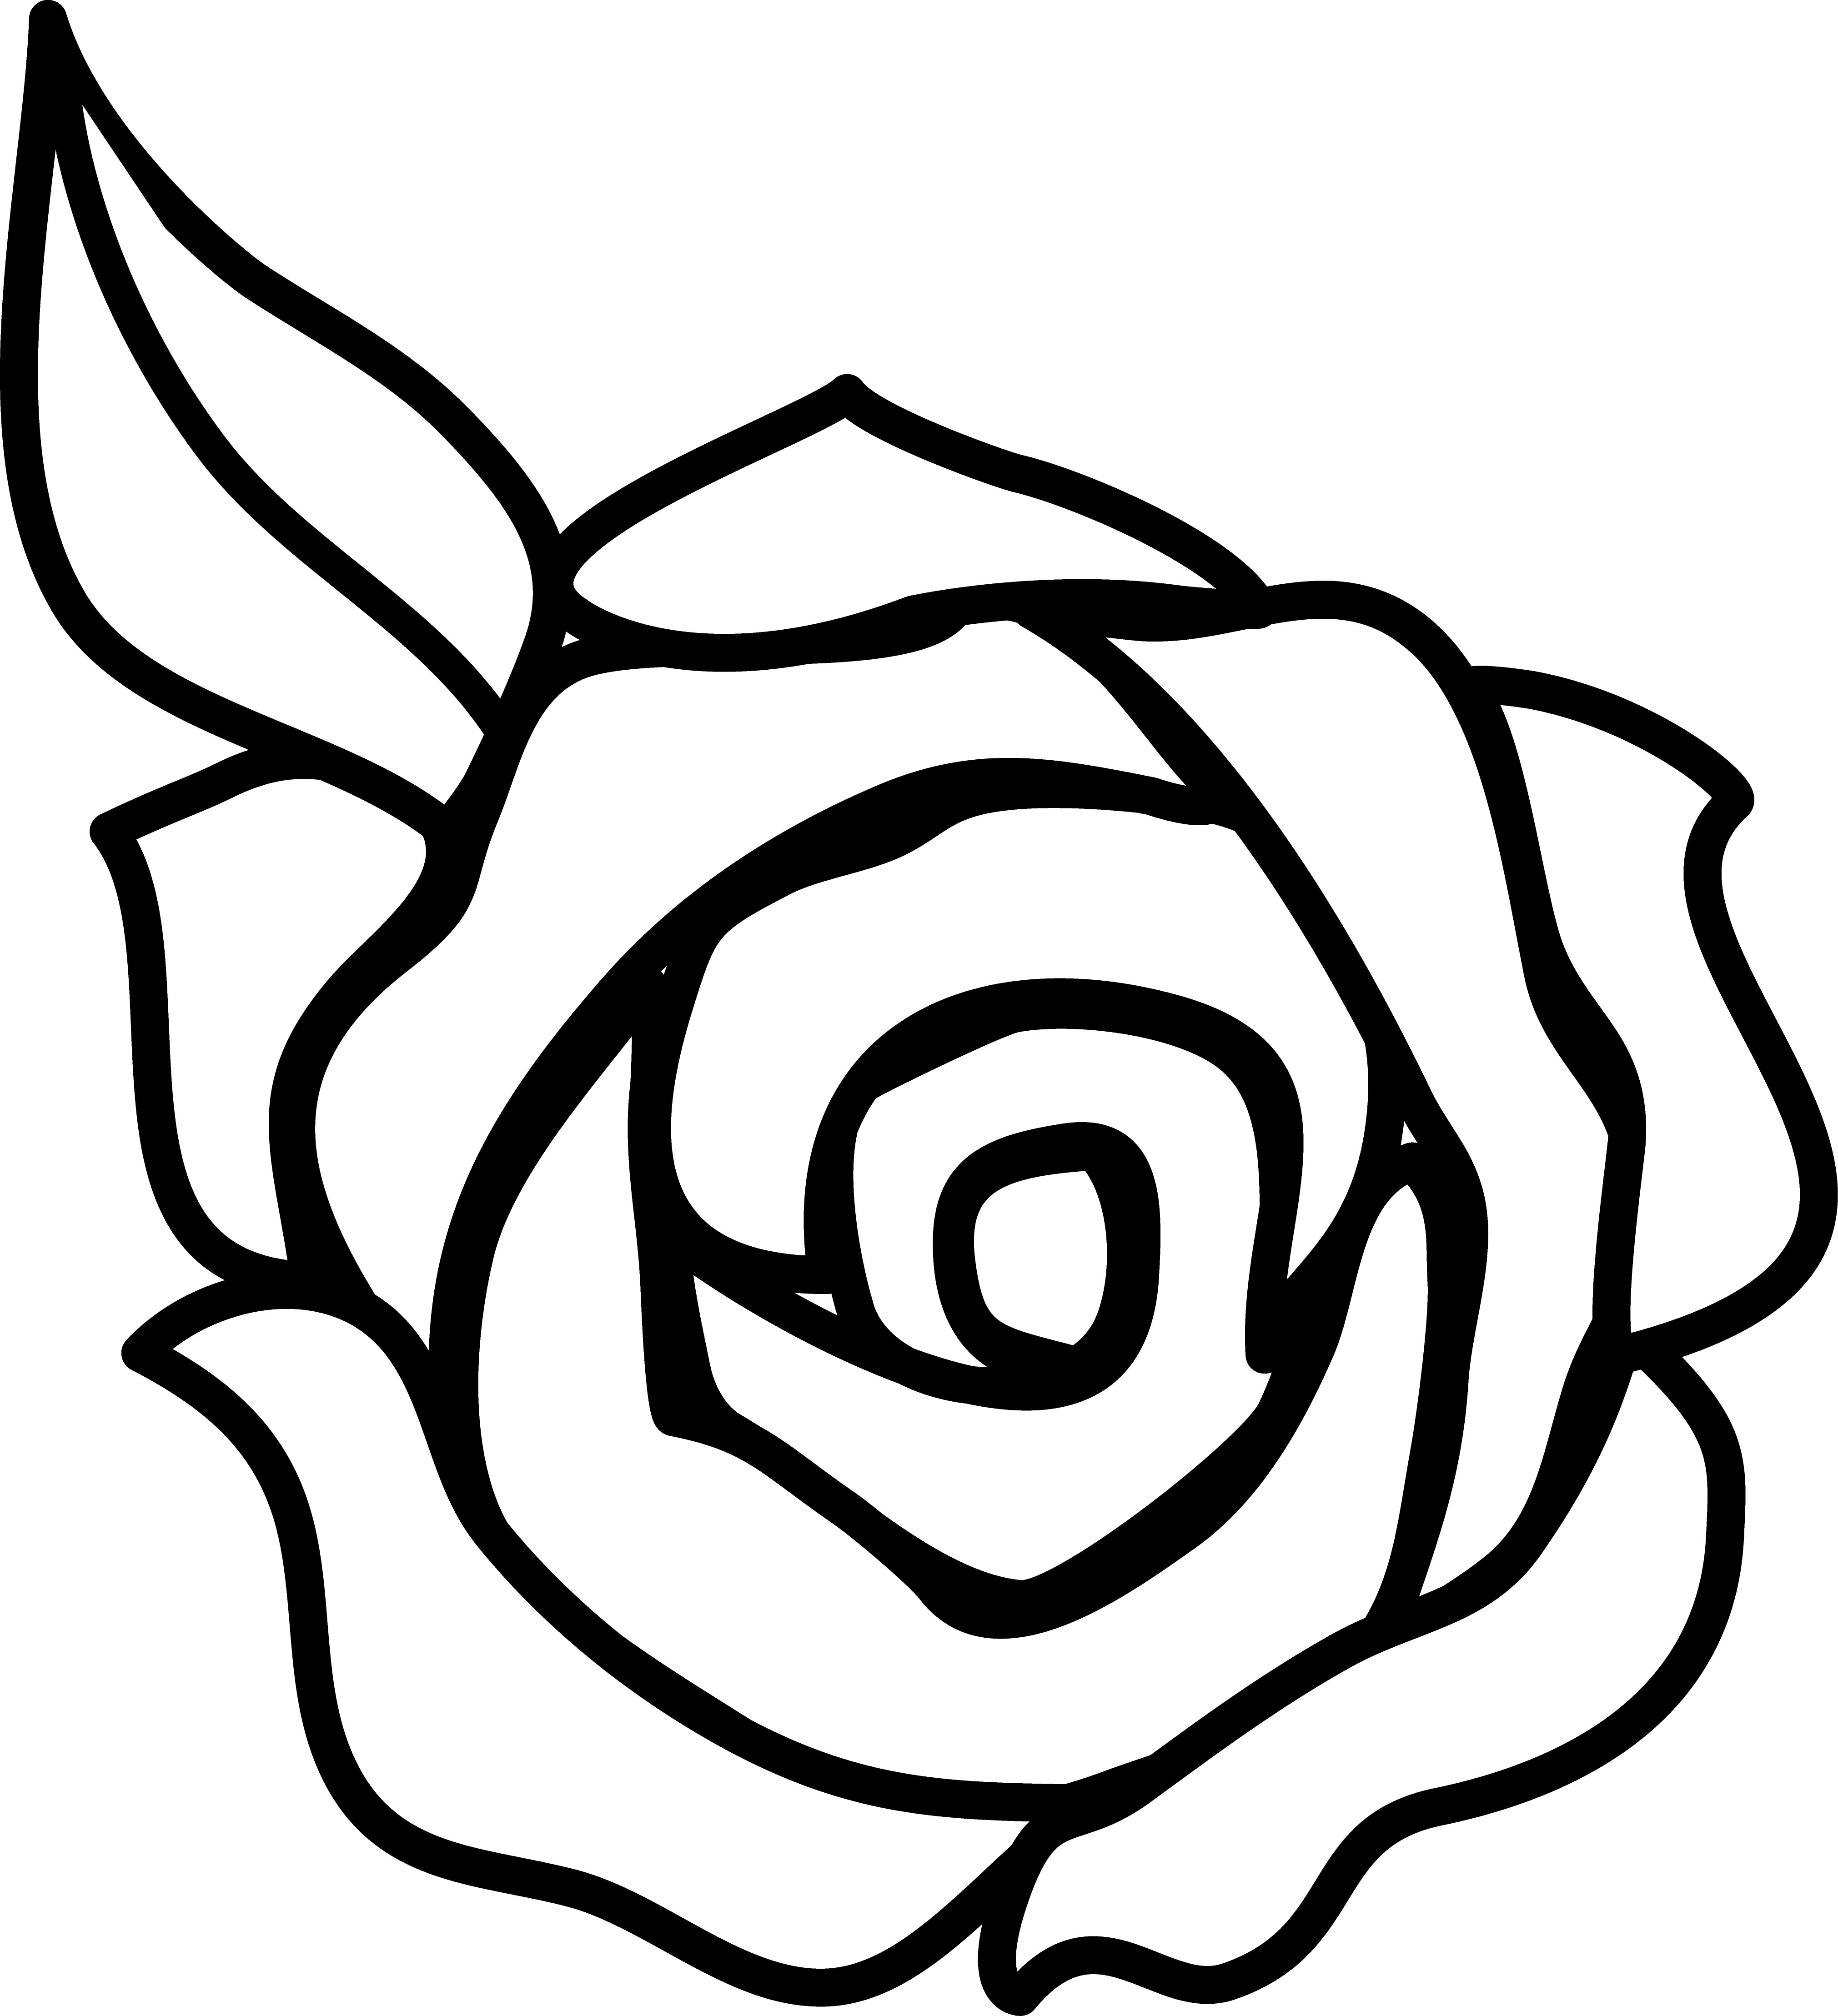 rose clipart black and white transparent background